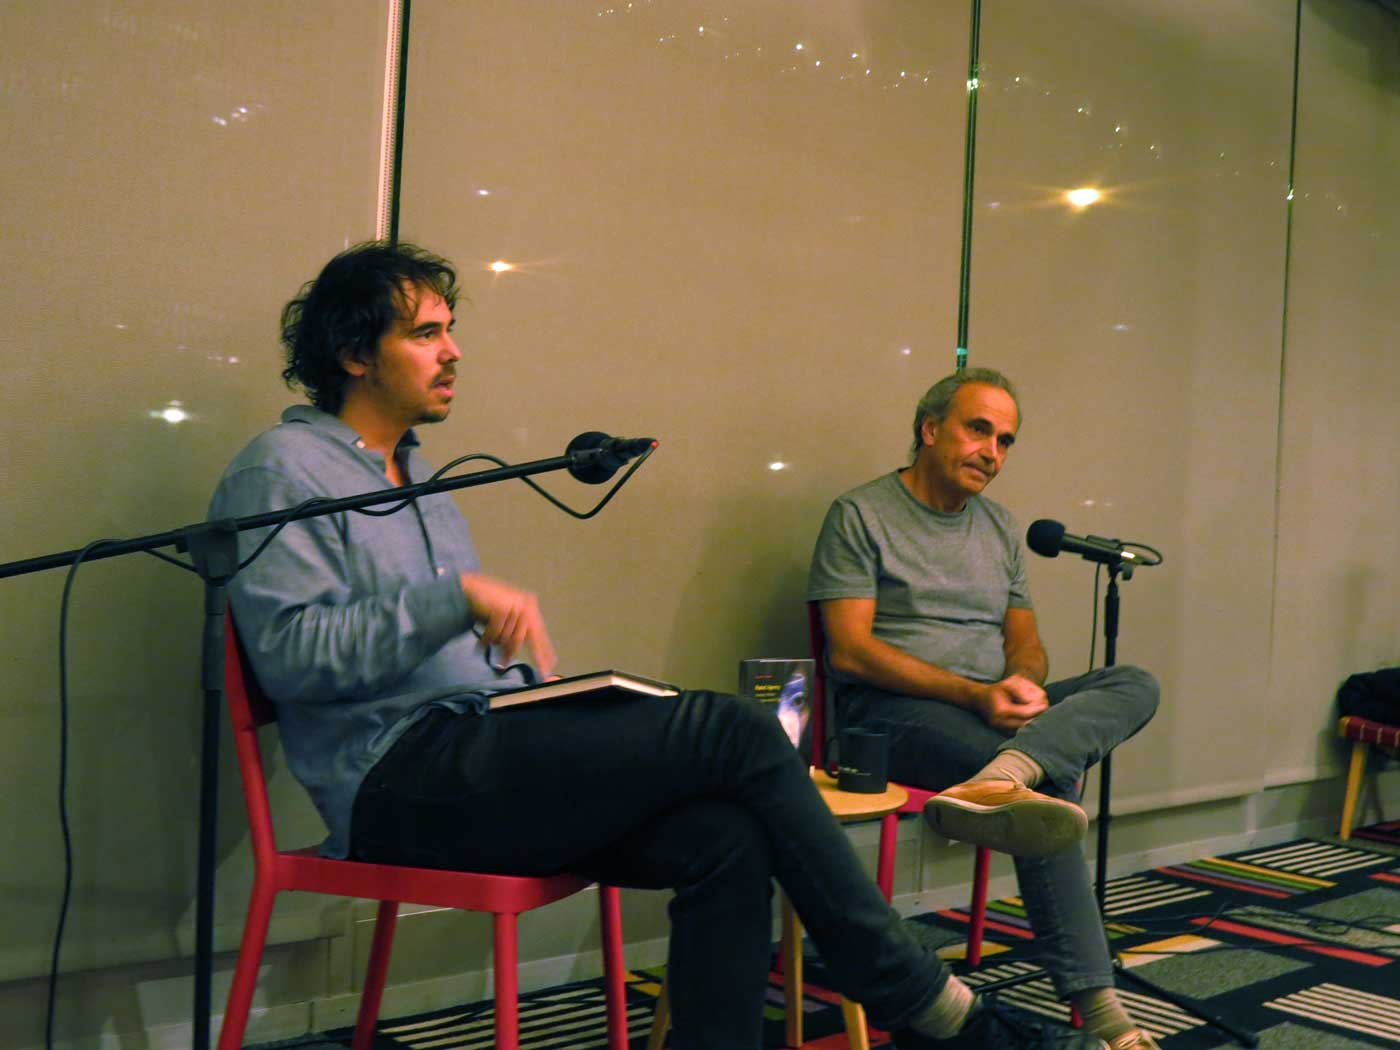 Author Michael Feher and Johnathan Levy sit addressing an audience